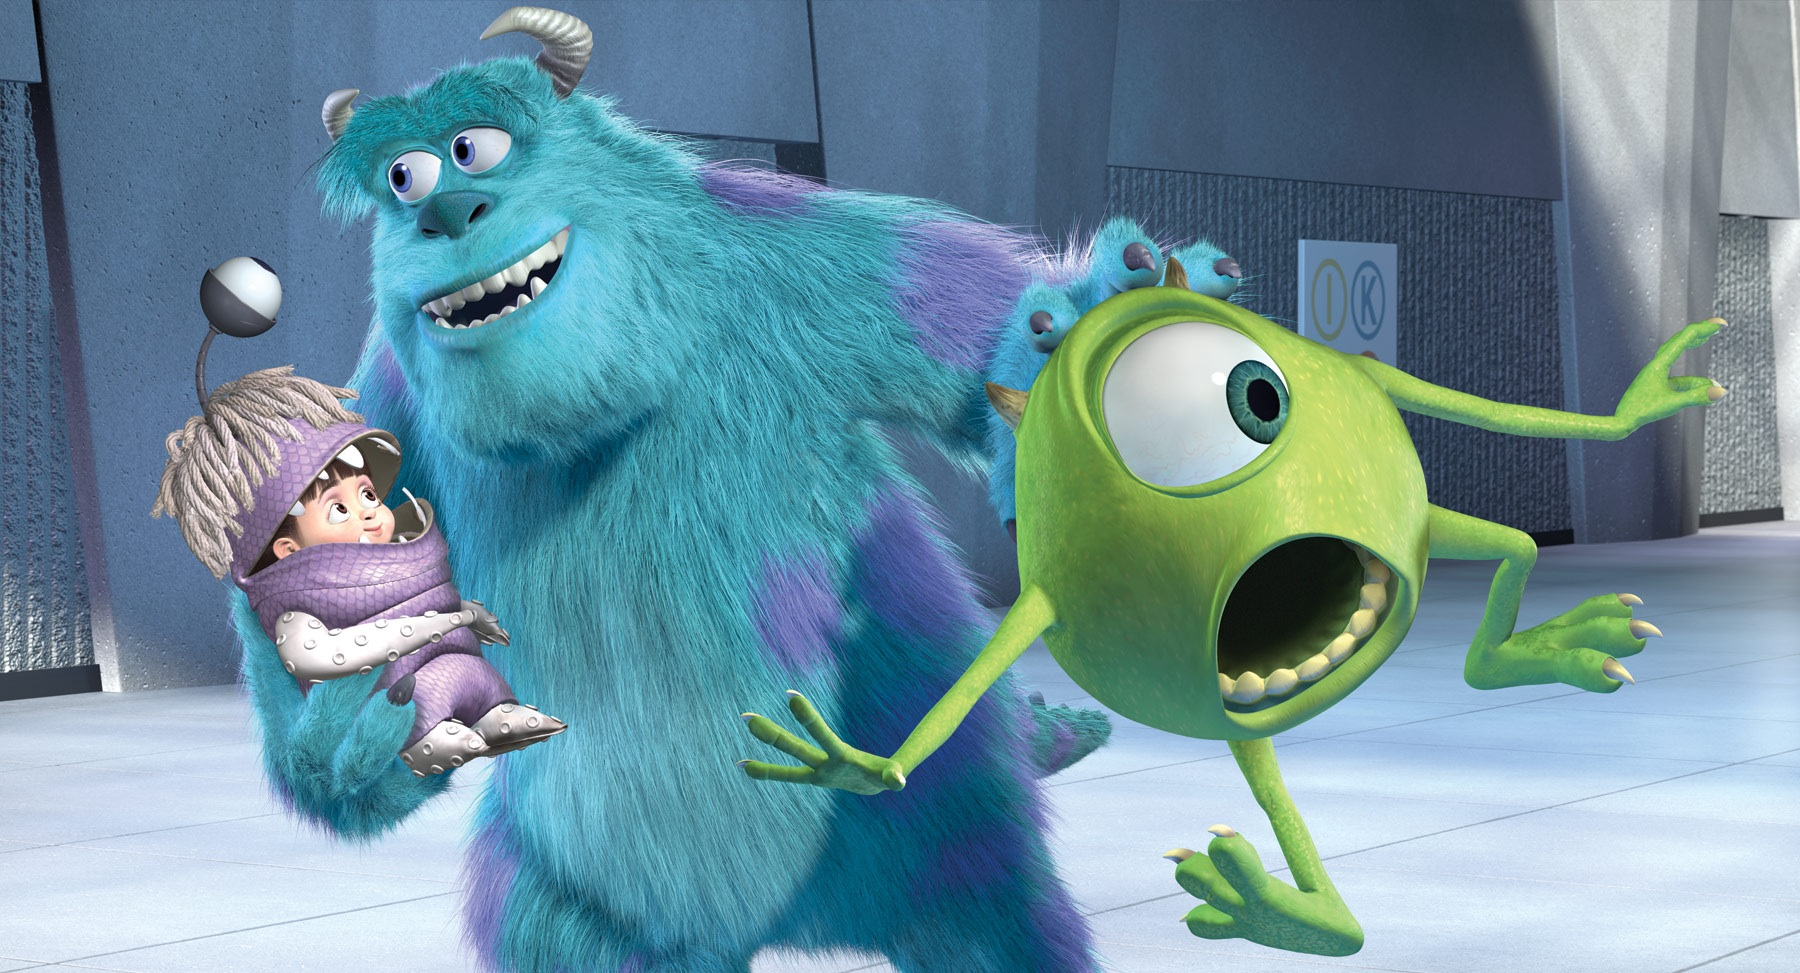 Uncategorized Sulley Mike And Boo image mikesulley pixar wiki fandom powered by wikia